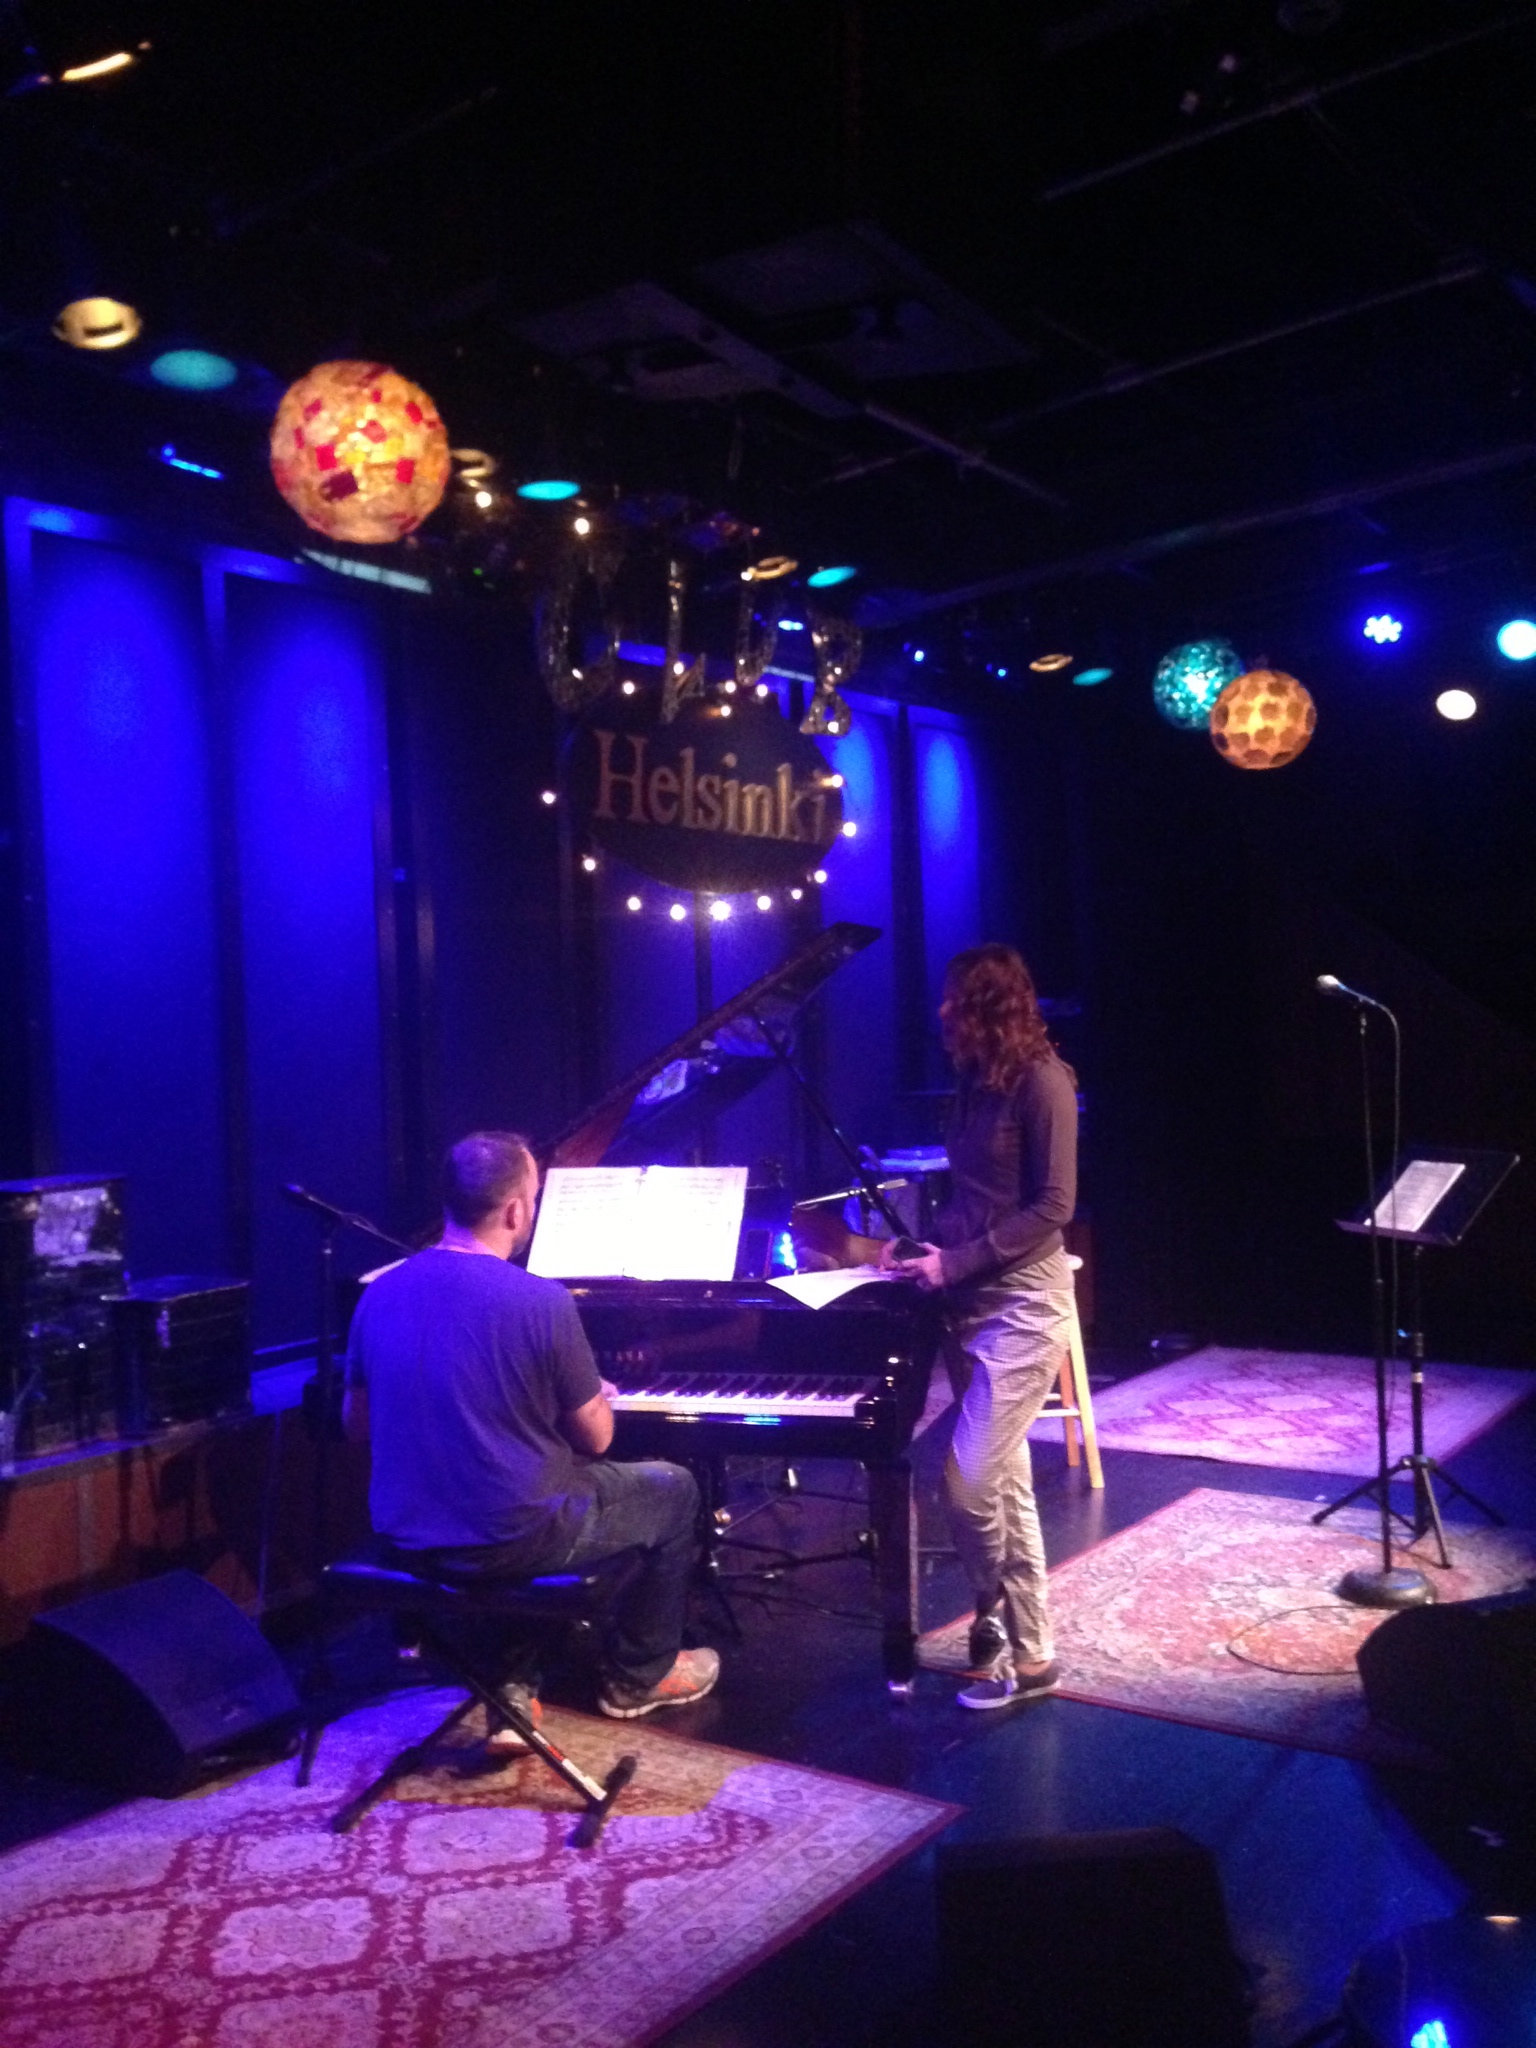 pre-show soundcheck and rehearsal with Sandra at Helsinki Hudson. Aug 30, 2013